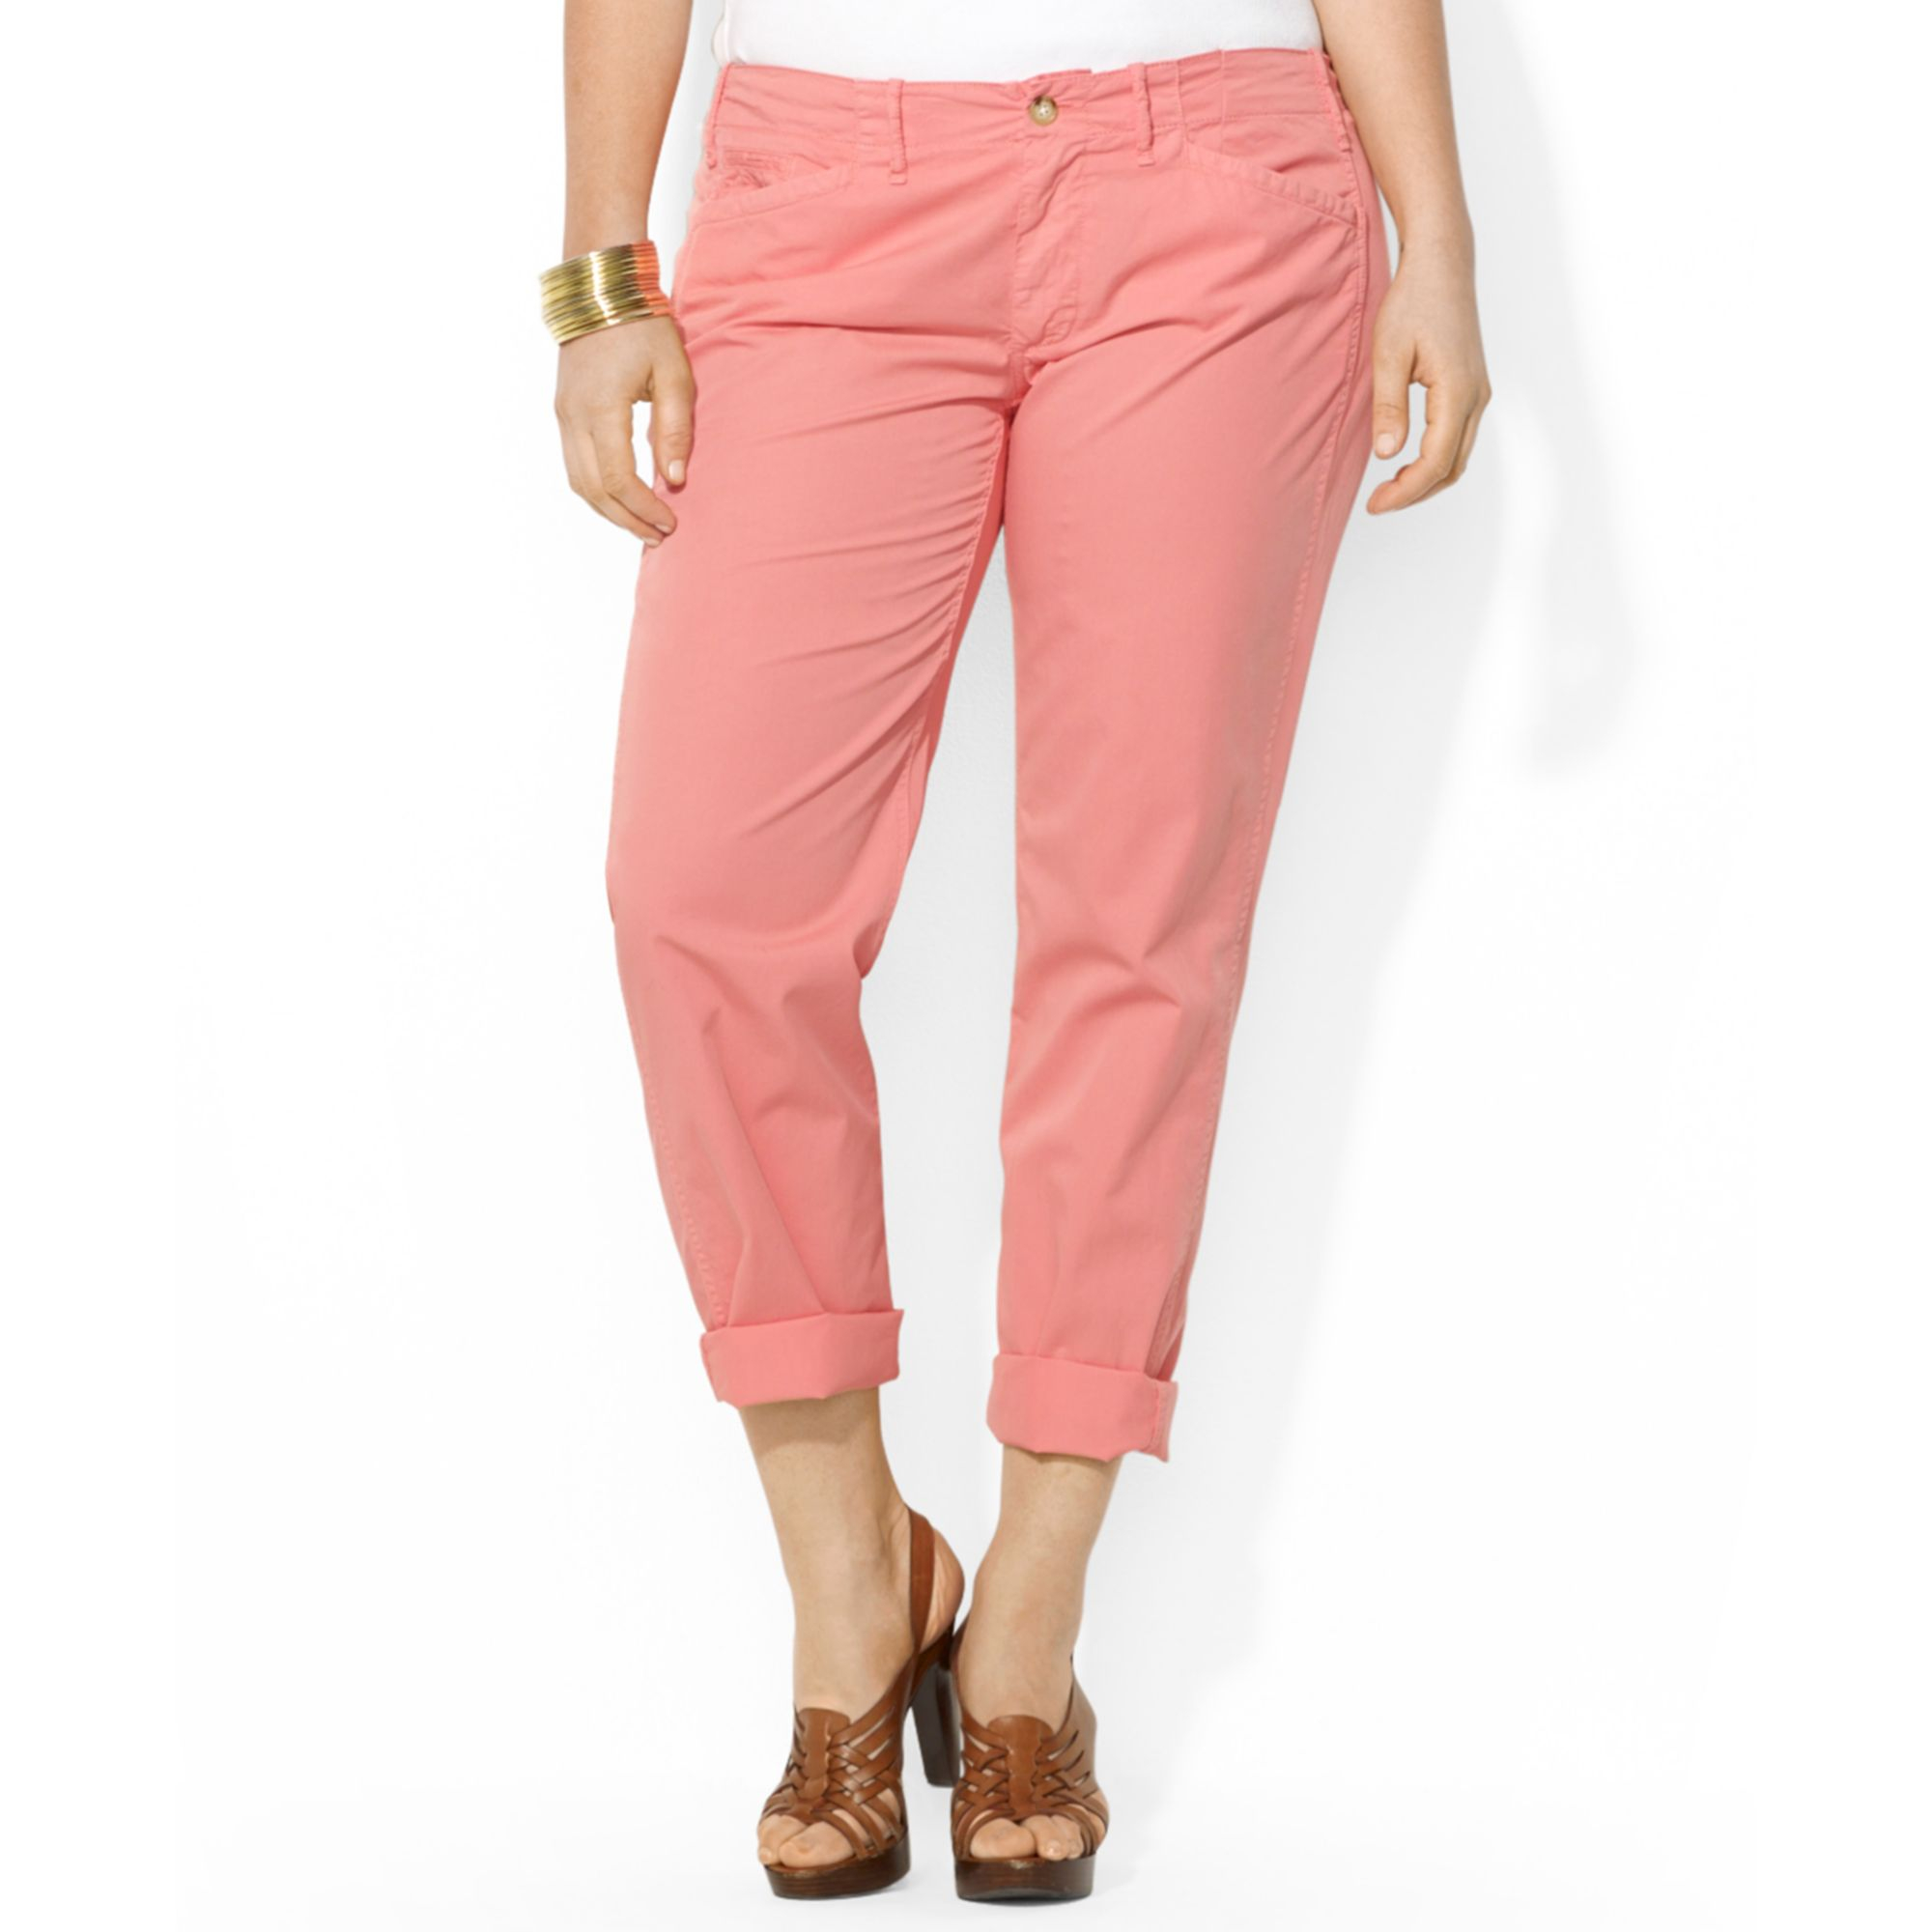 e40542314e3 Lyst - Lauren by Ralph Lauren Plus Size Rolledcuff Chino Pants in Pink